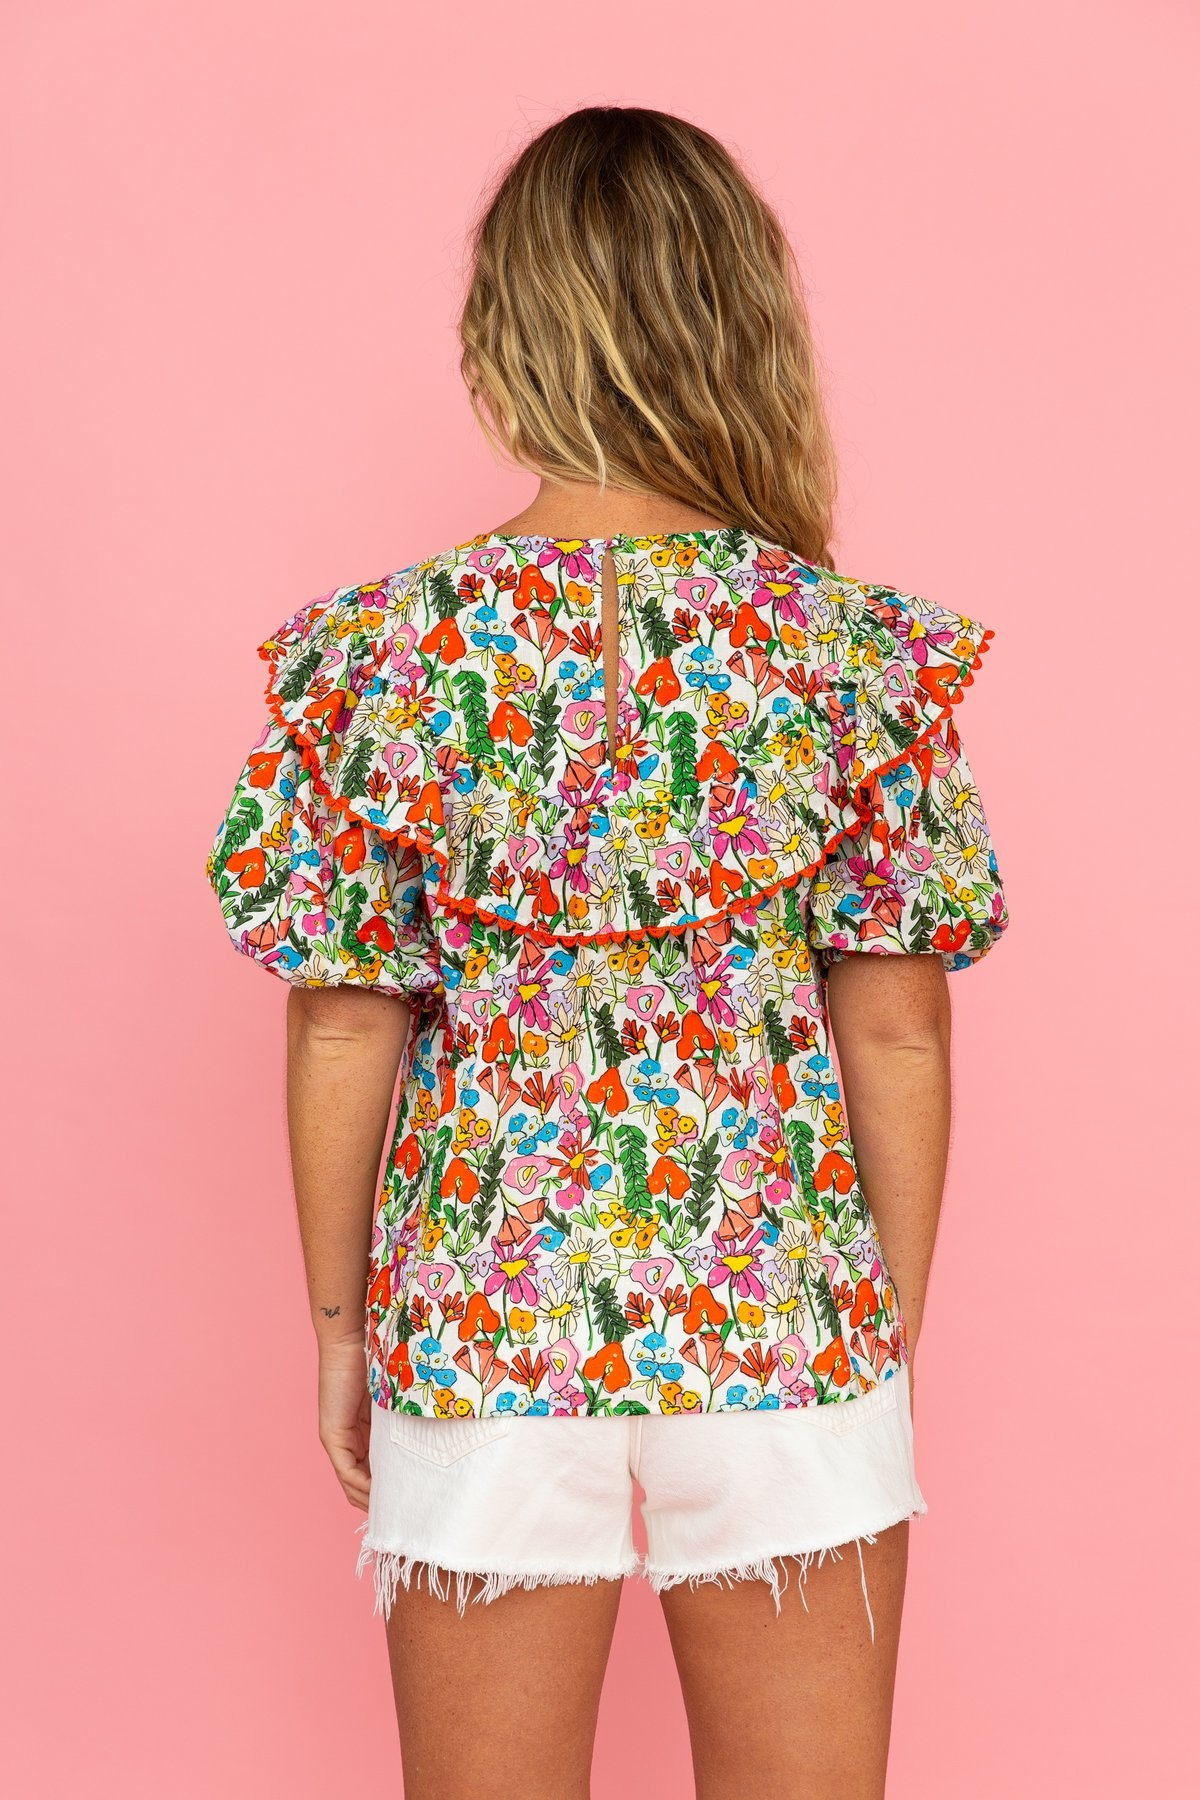 Crosby By Mollie Burch Frances Top Giverny